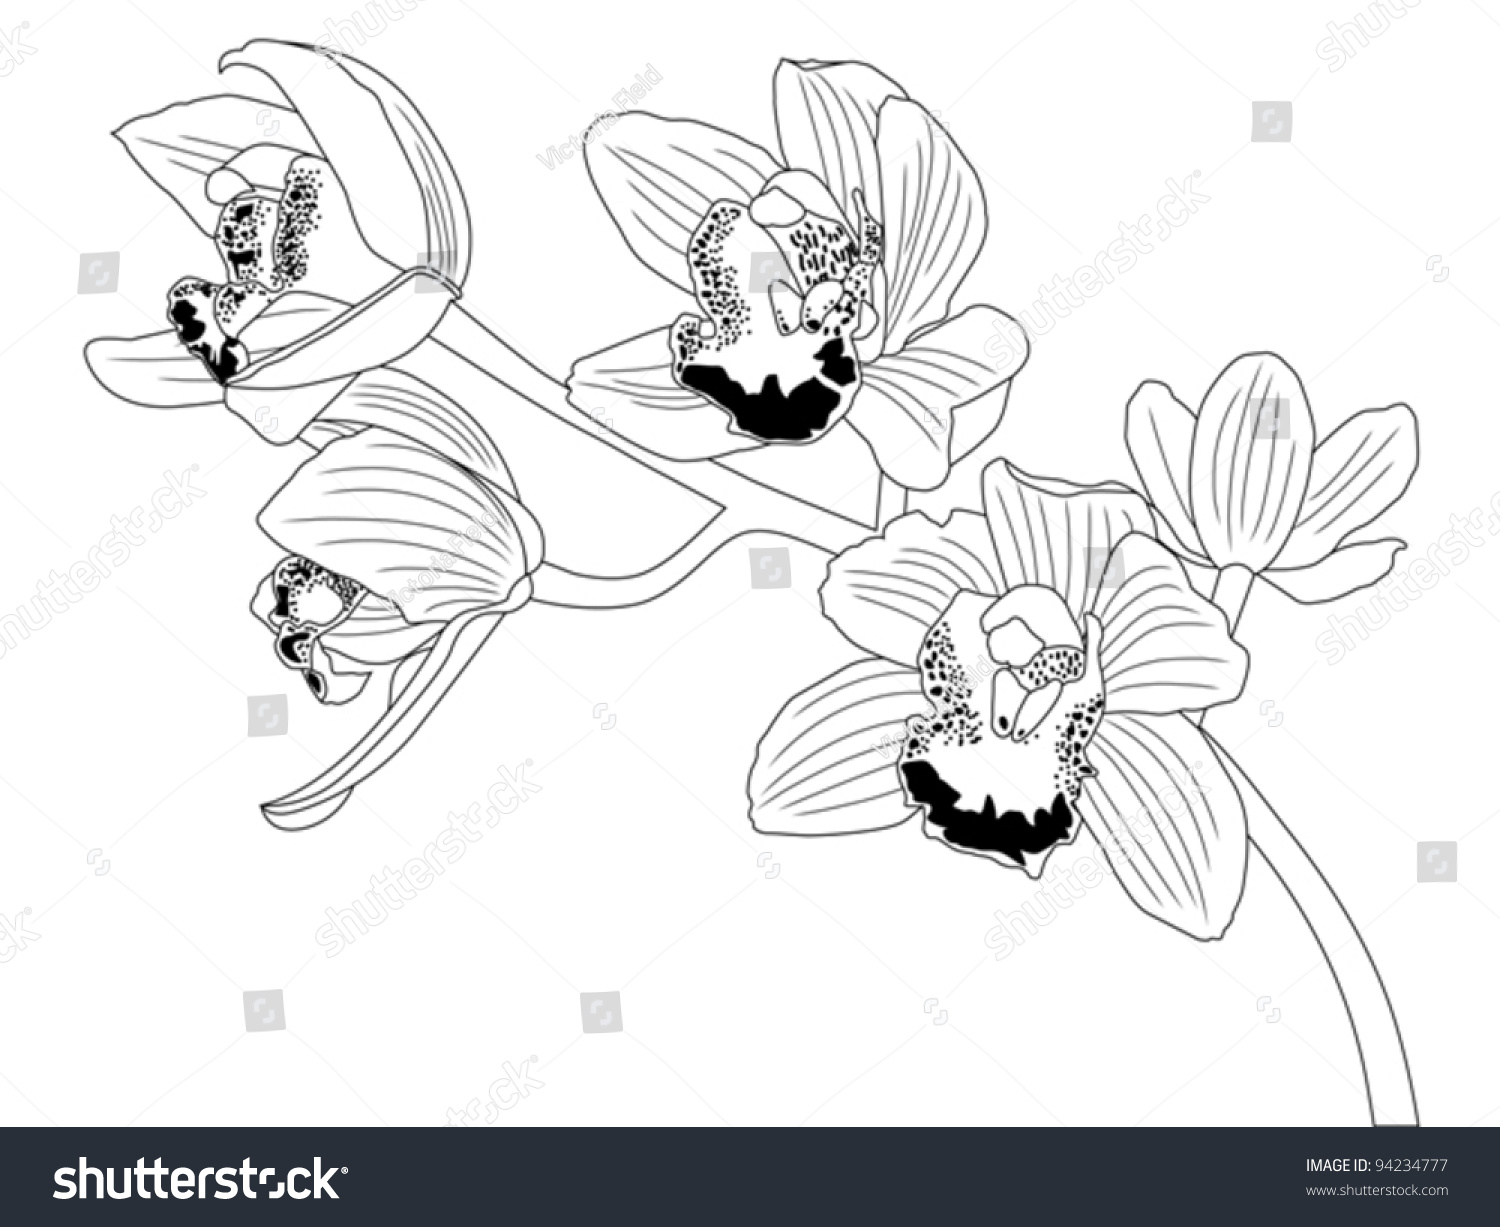 Orchid Flower Line Drawing : Orchid line drawing stock vector illustration